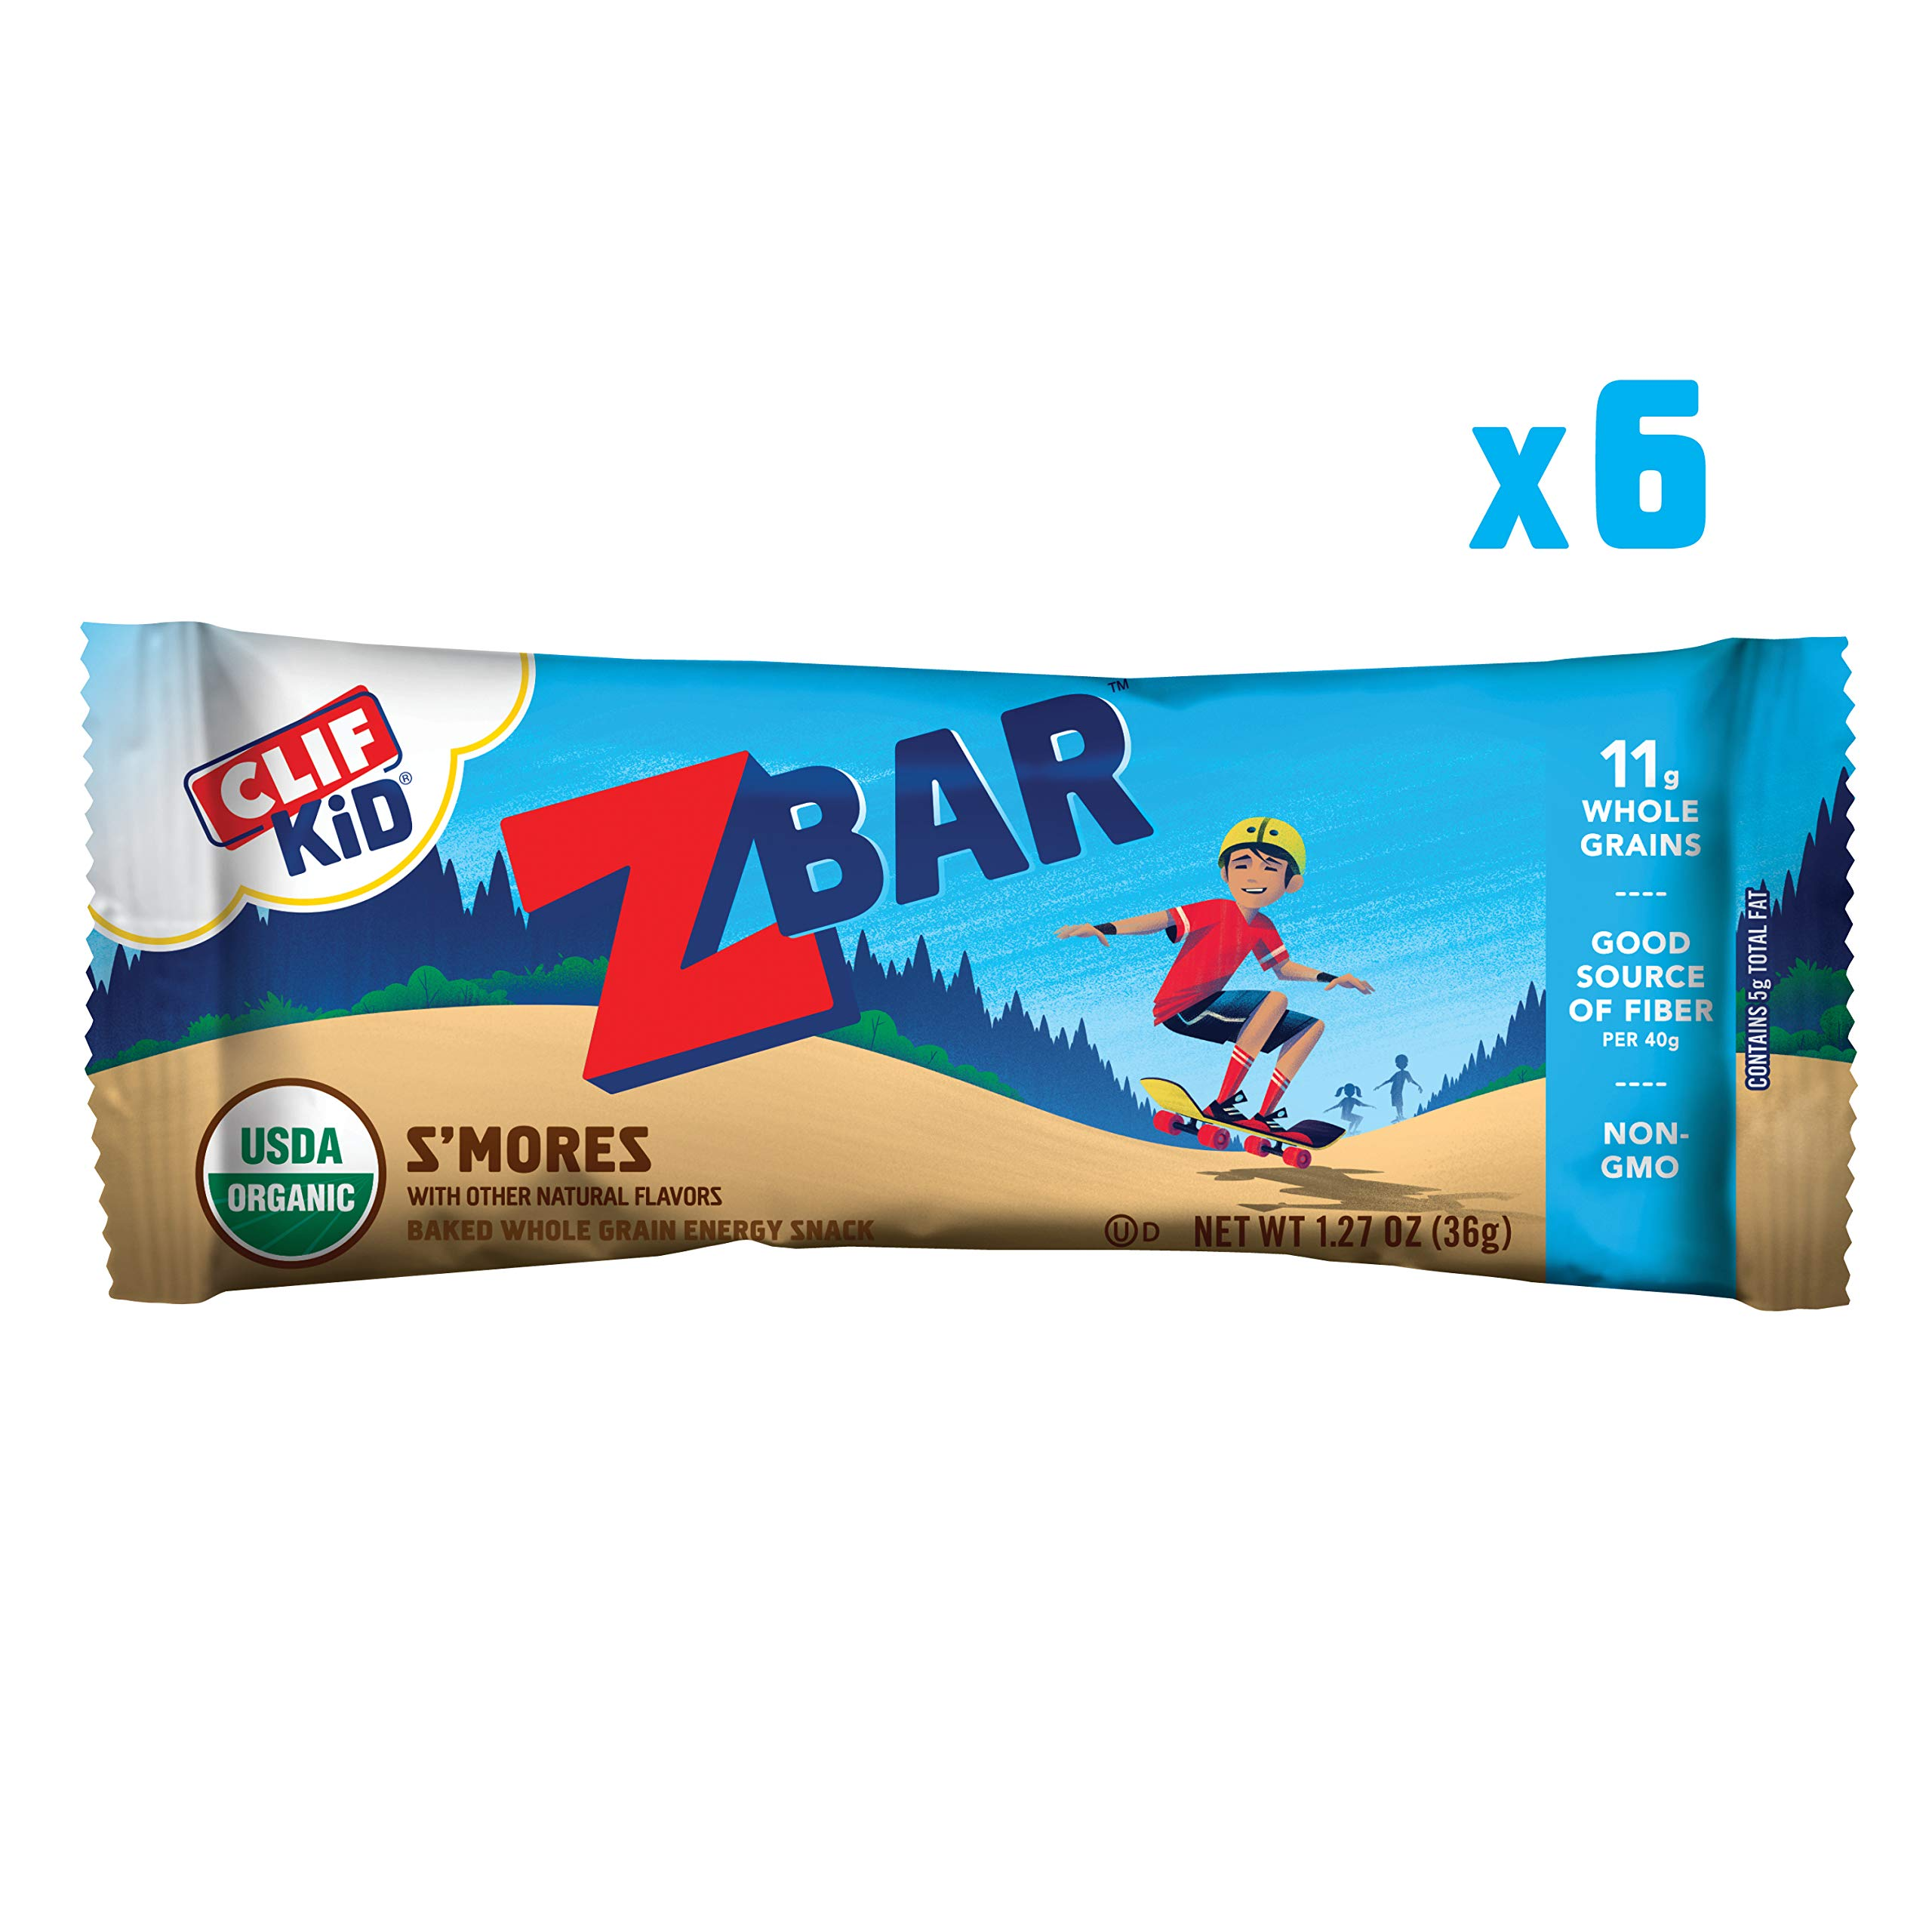 CLIF KID ZBAR - Organic Energy Bar - S'mores - (1.27 Ounce Snack Bar, 6 Count) (packaging may vary)